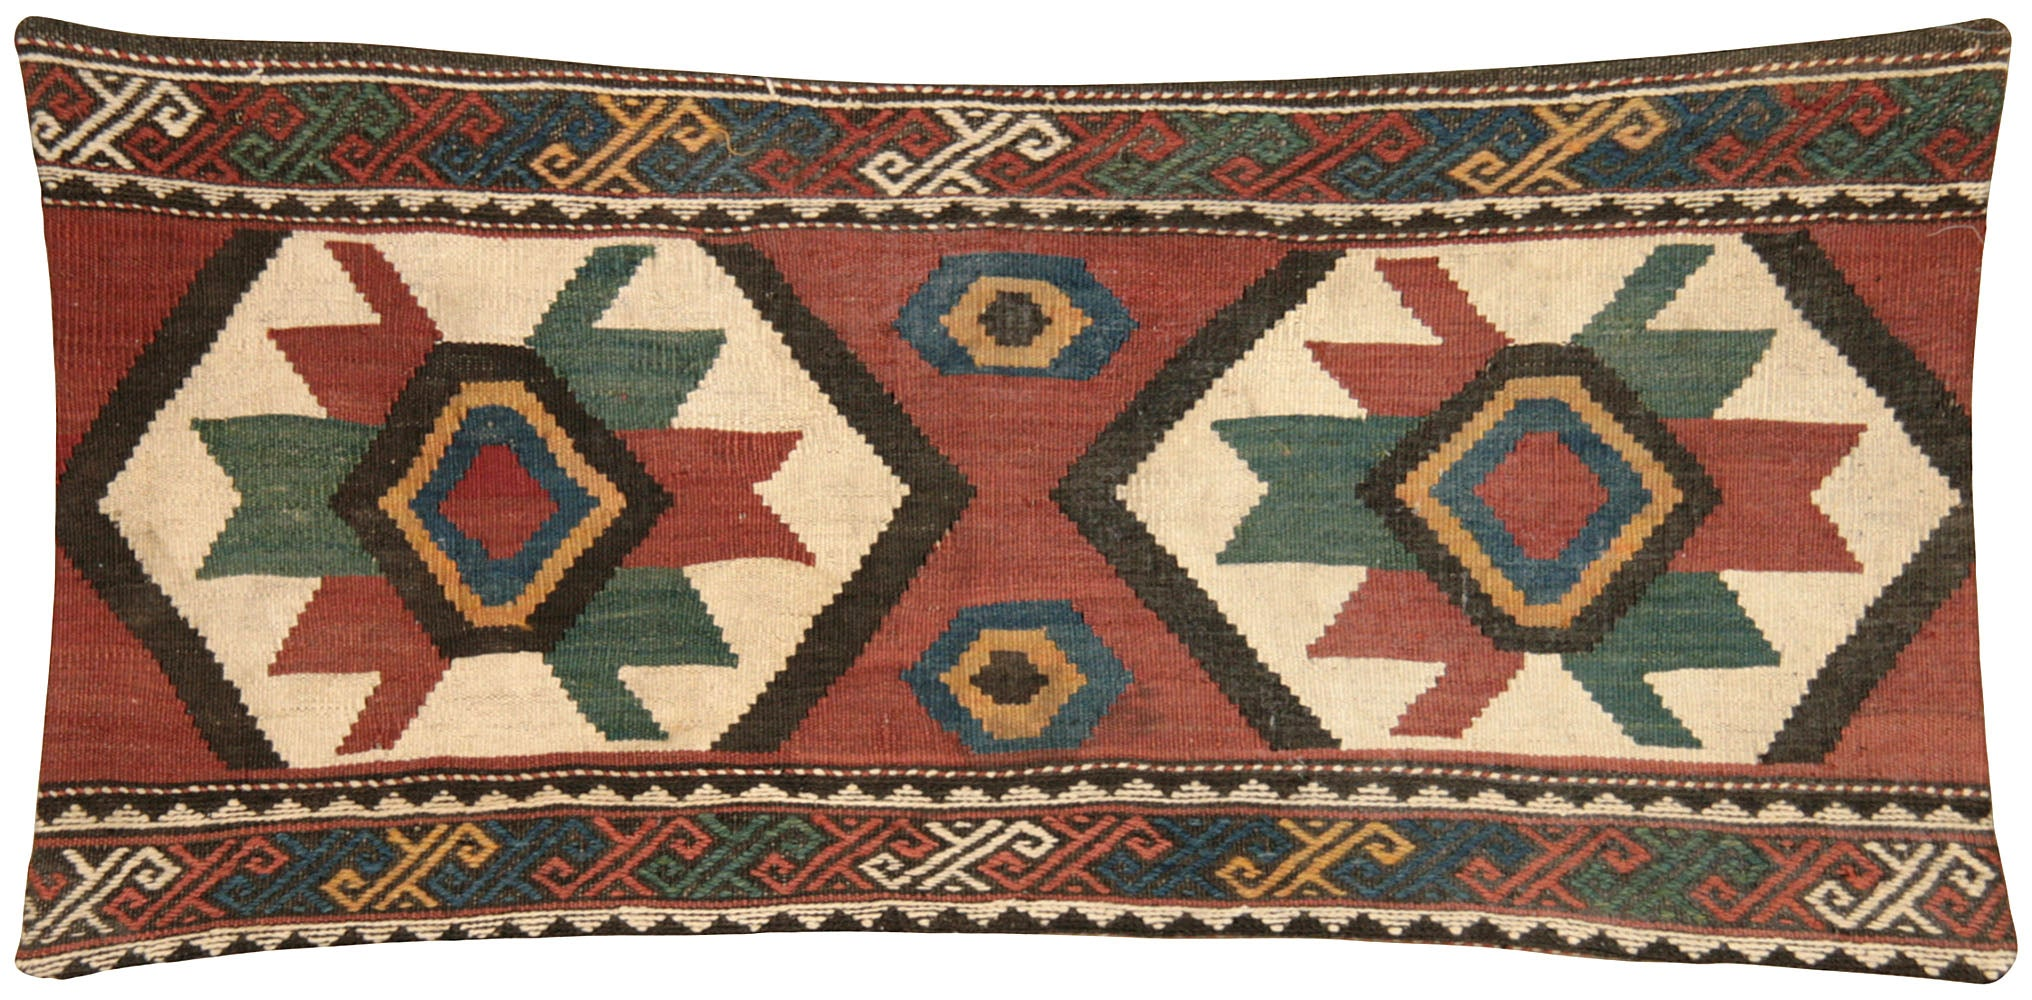 "Vintage Turkish Kilim Pillow - 15"" x 33"""